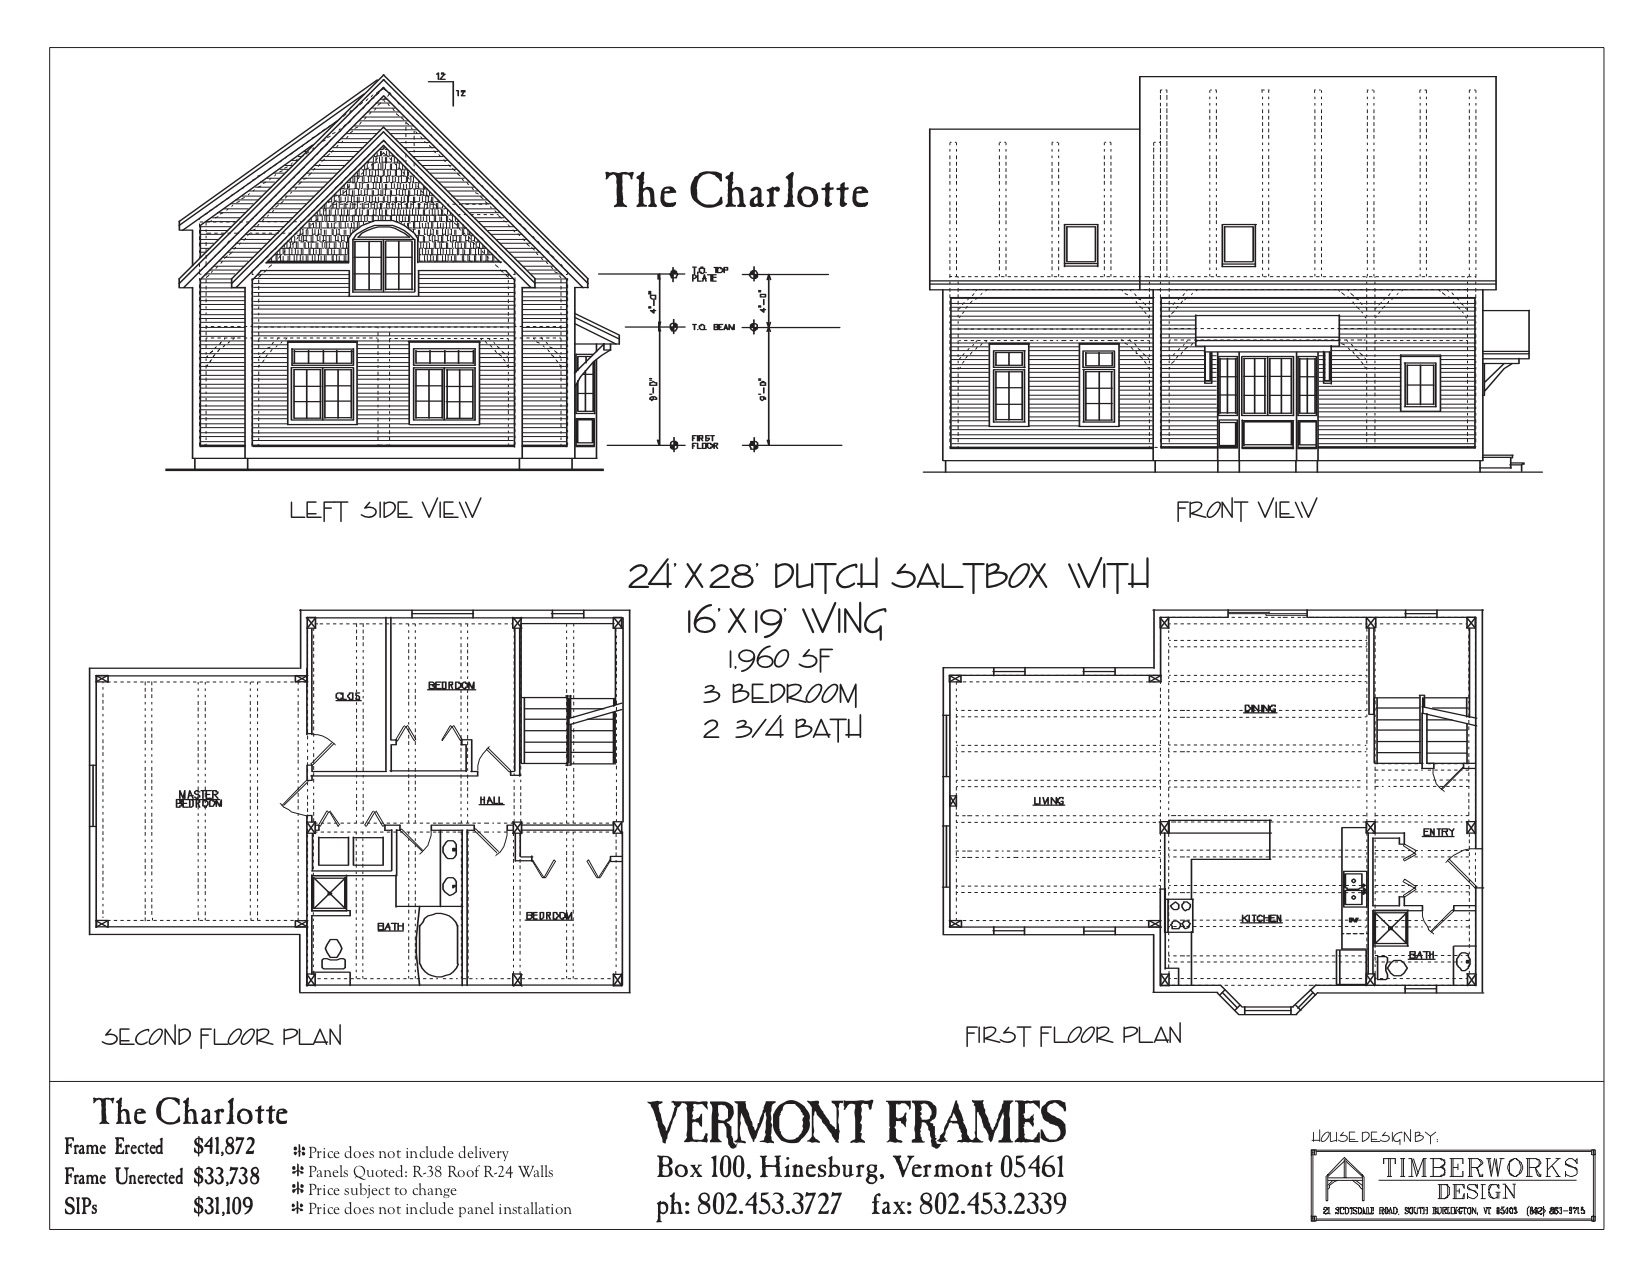 Charlotte Dutch Saltbox floor plan